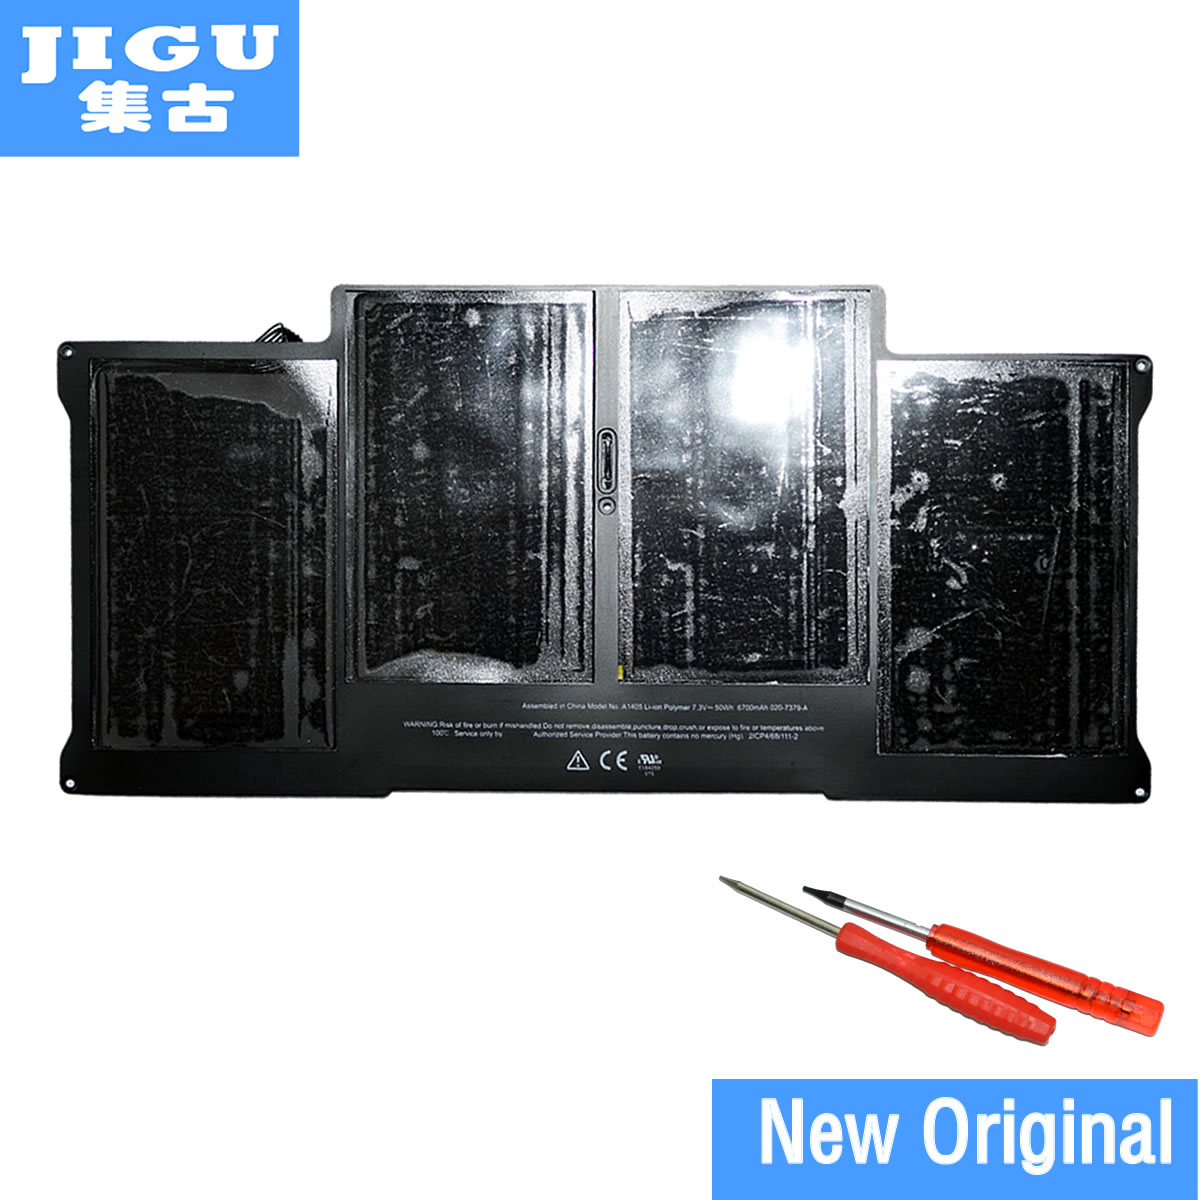 JIGU Brand New Original Genuine Battery A1405 For MacBook Air 13 A1369 Mid 2011 A1466 Mid 2012, equipped with two screwdrivers стоимость